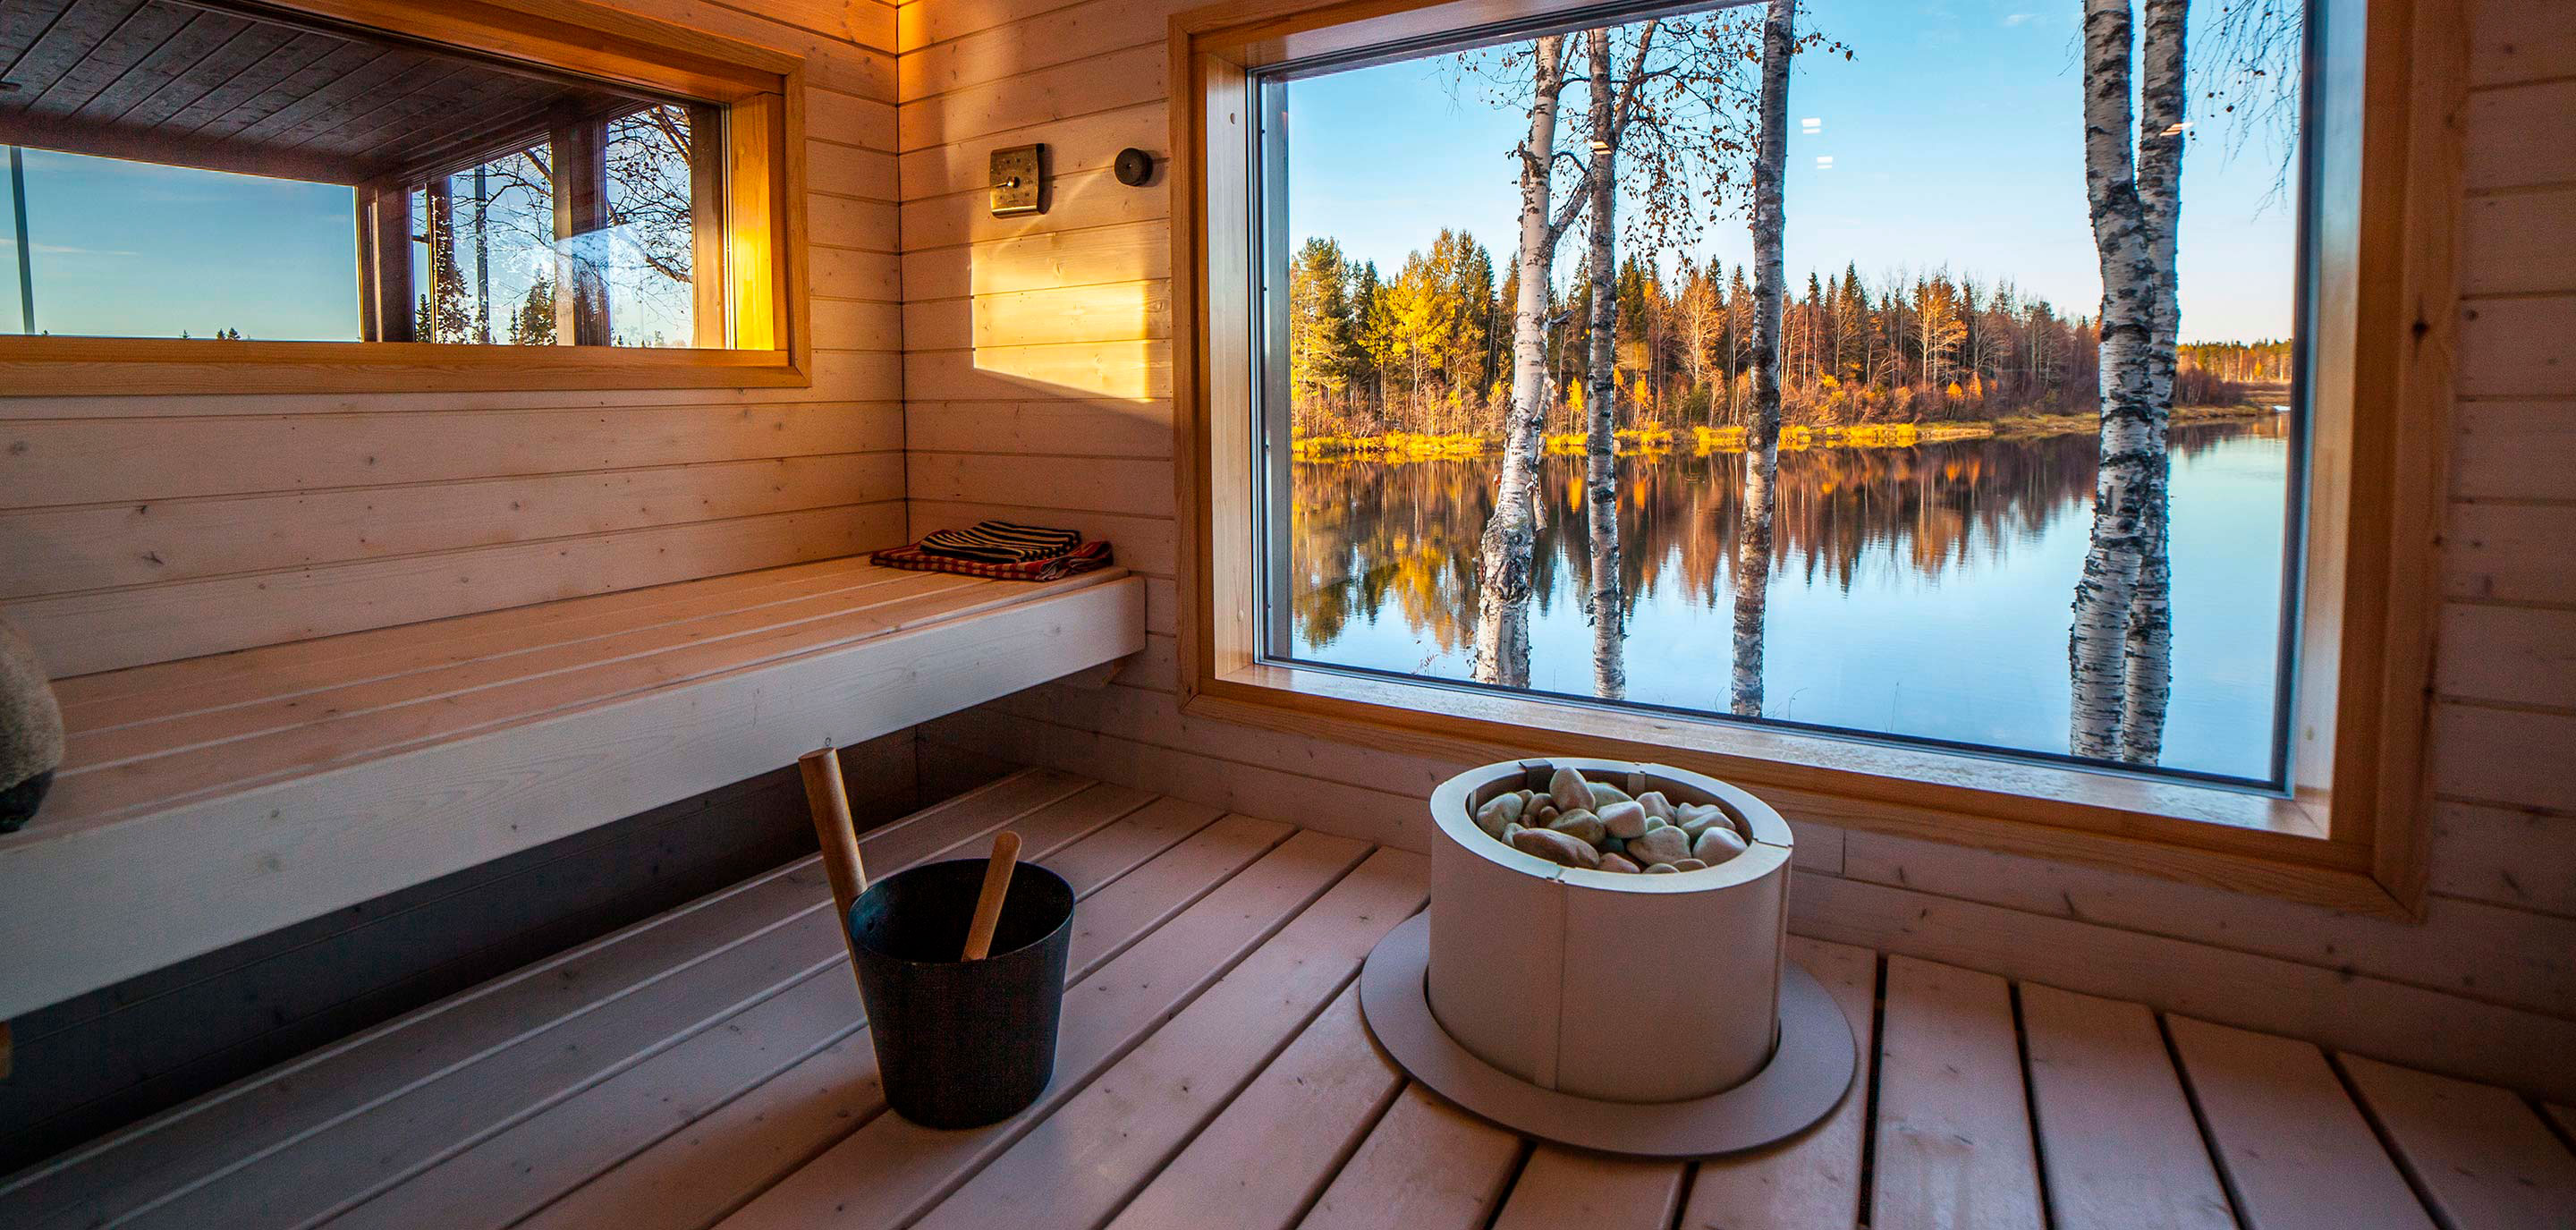 arctic-dreams-house-lapland-luxury-hotel-sauna-view